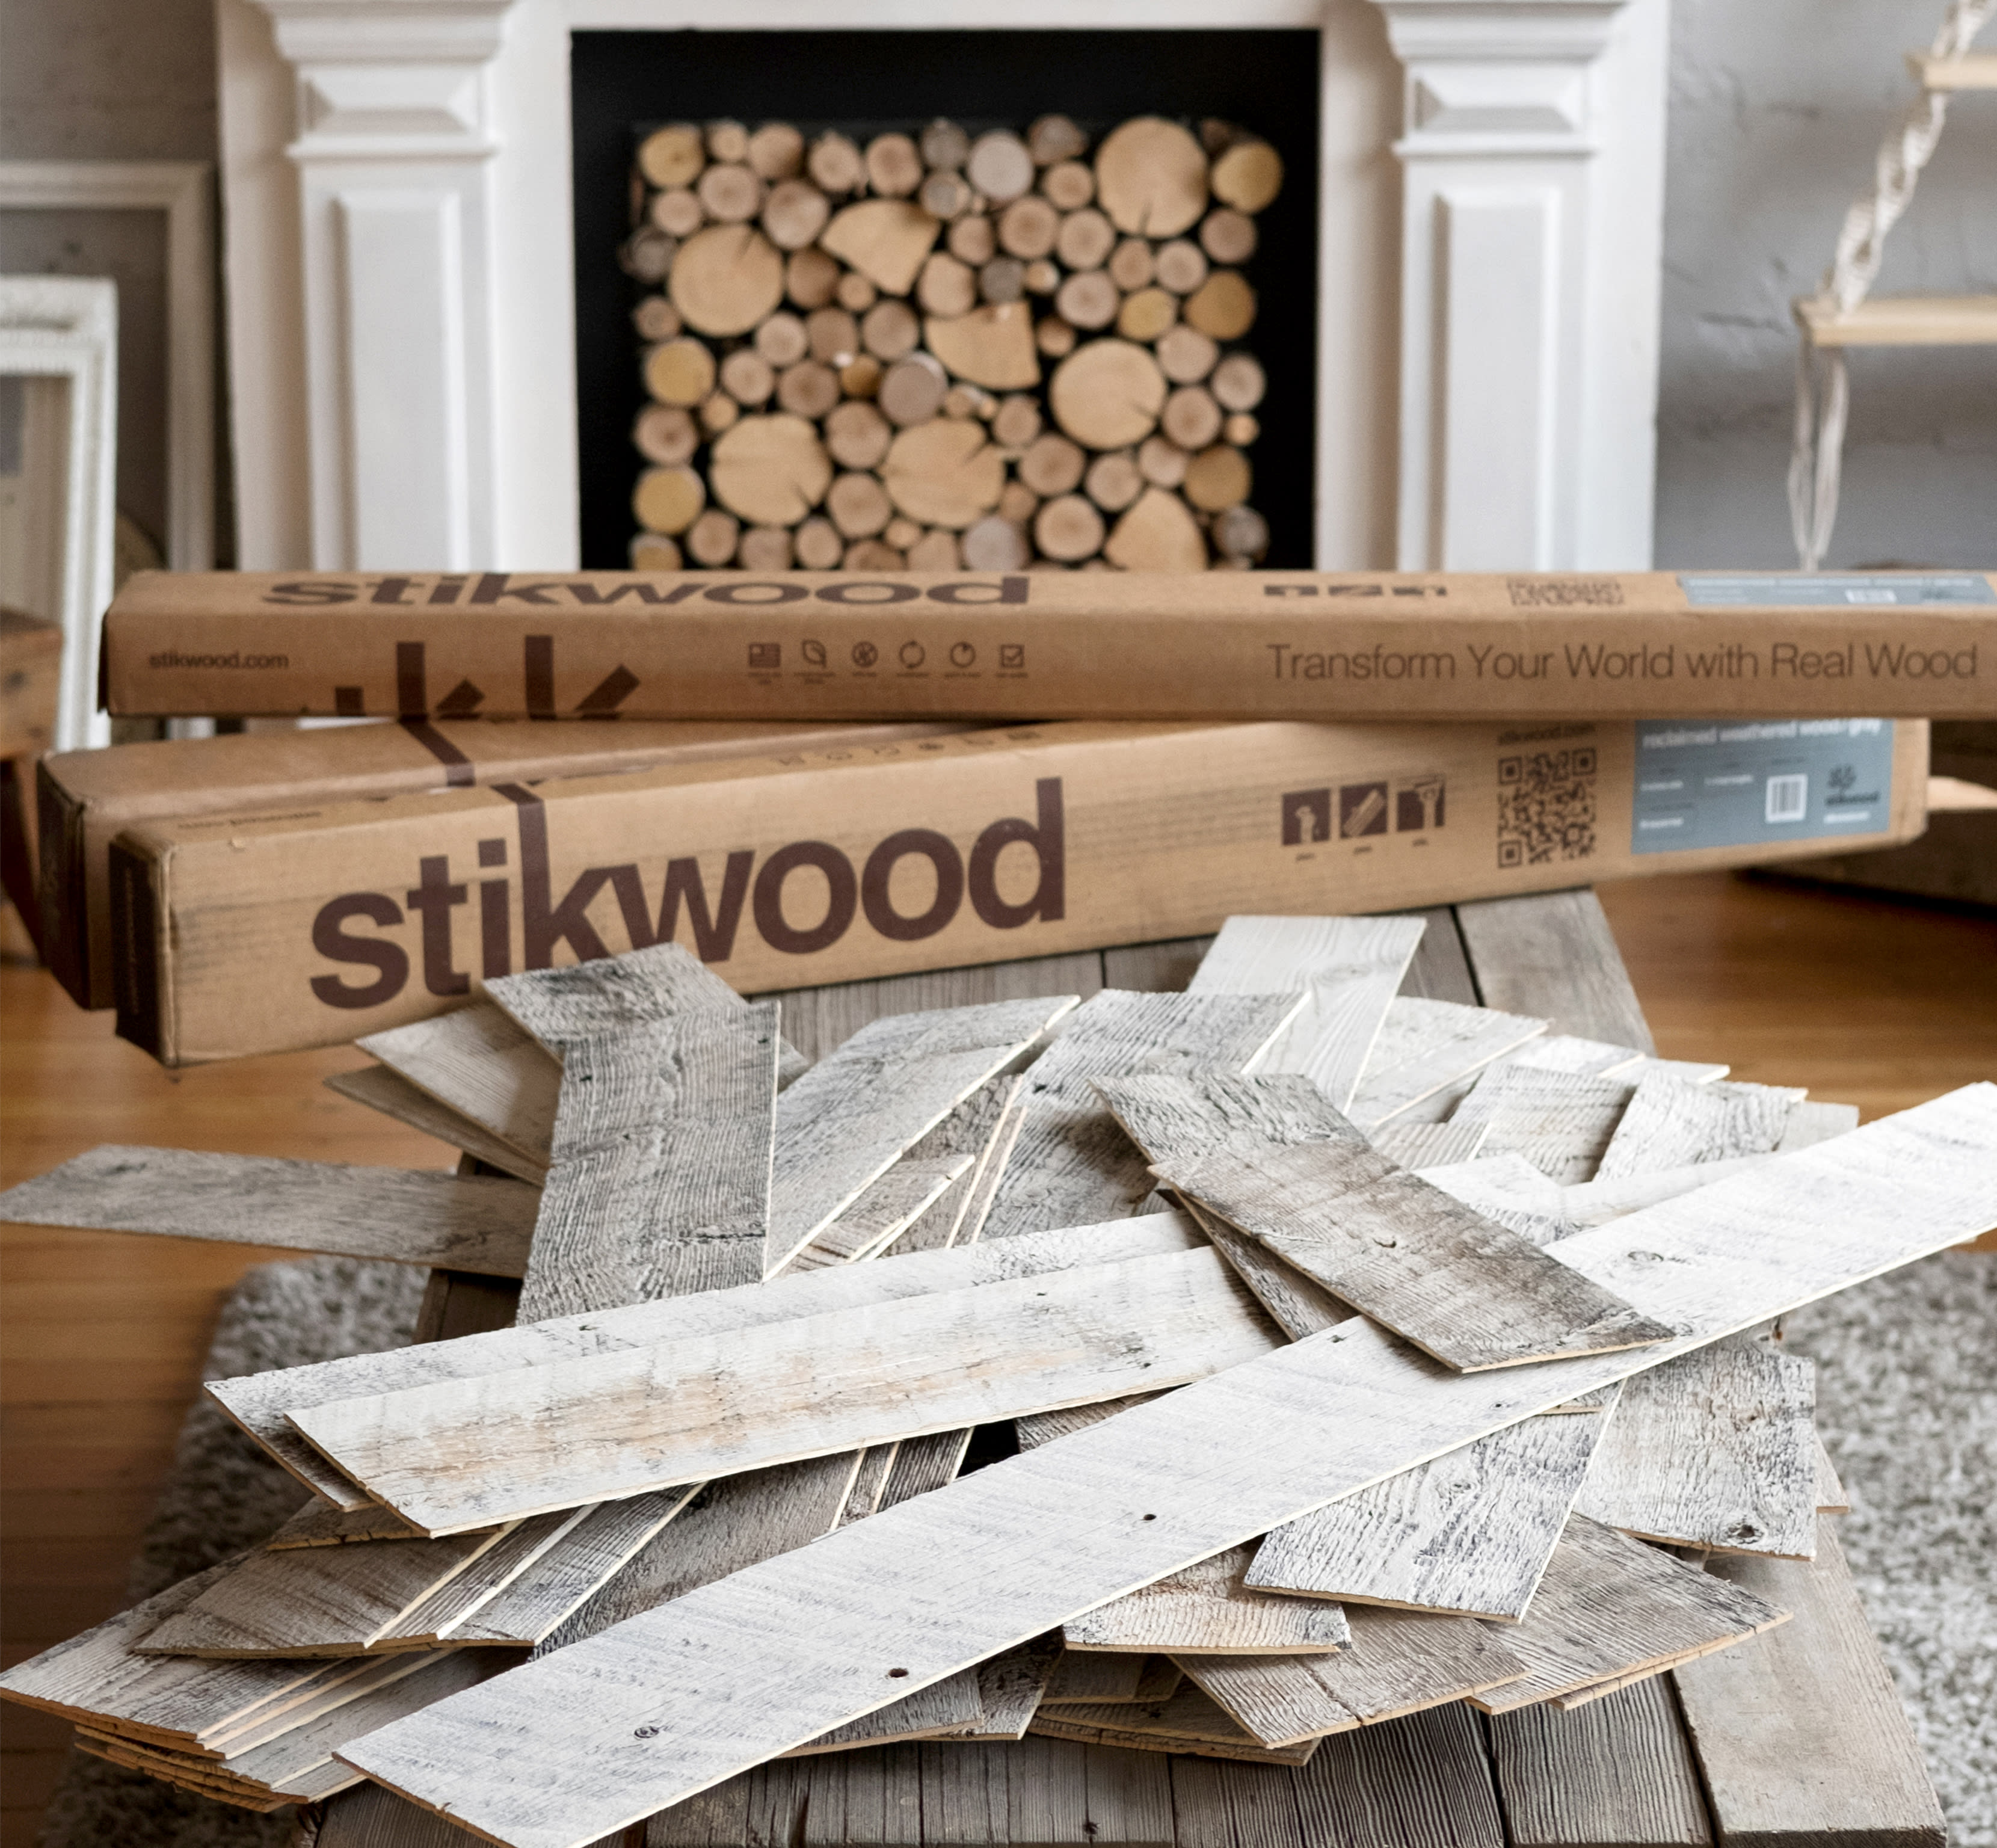 Living room fireplace filled with wood and a pile of stikwood reclaimed weathered wood gray peel and stick wood planks out front acclimating.